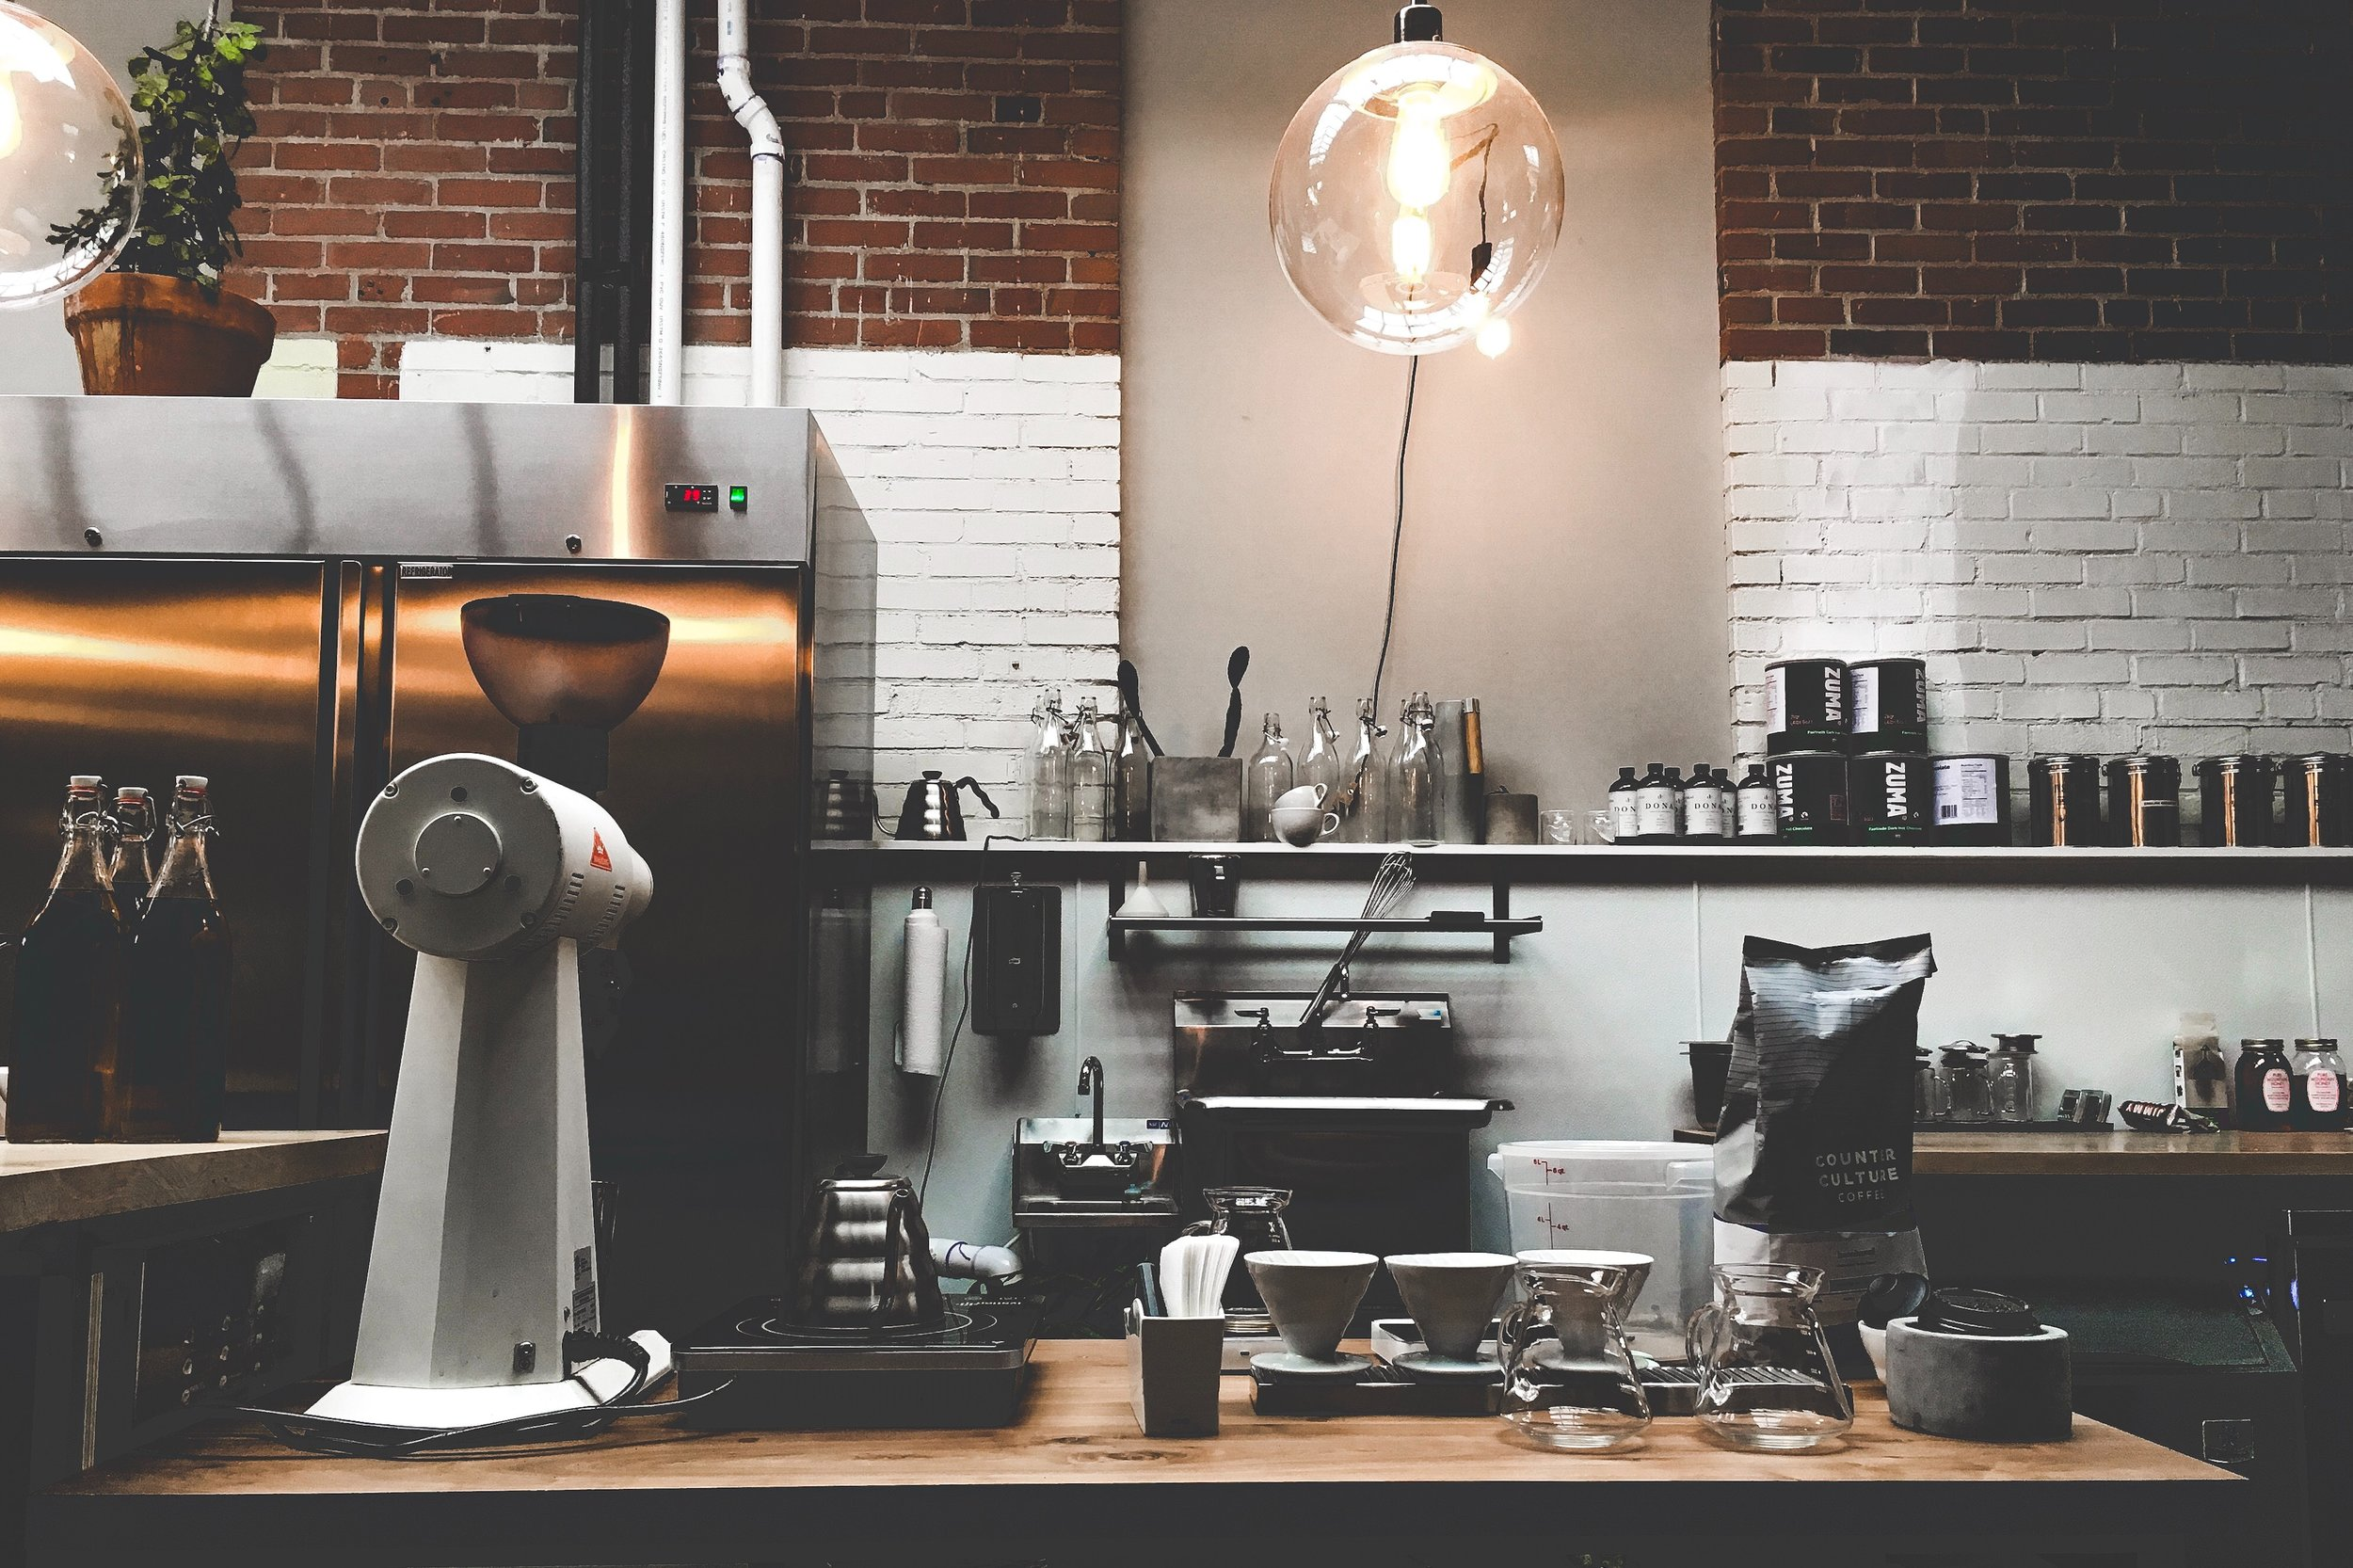 Serving cold brews and cappuccinos within a community and culture of hope. -